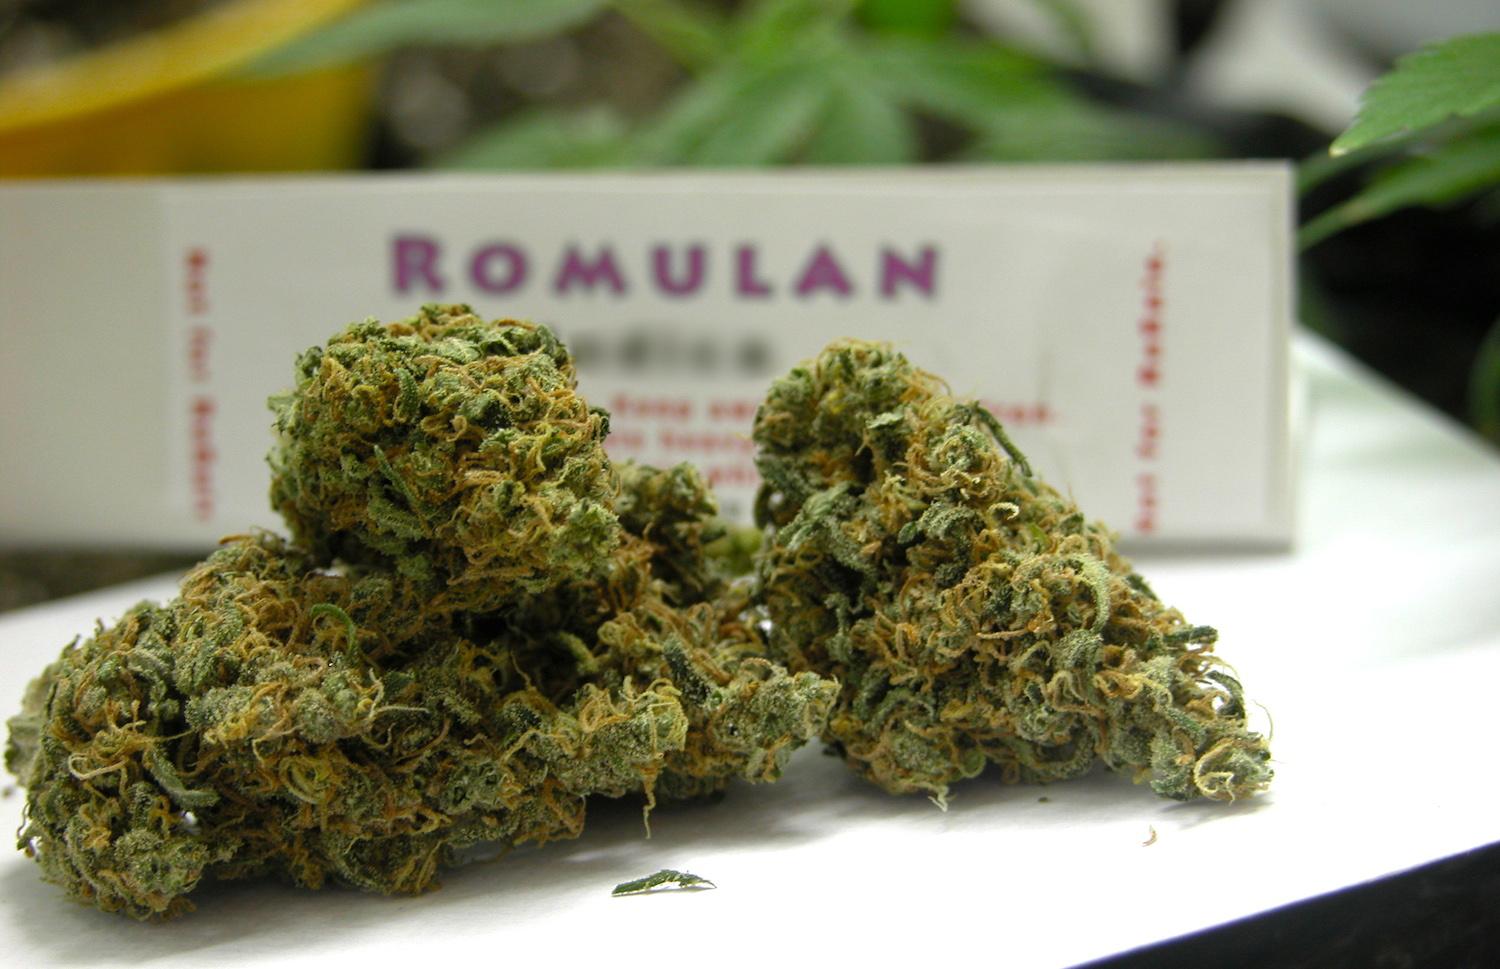 Romulan Strain Review